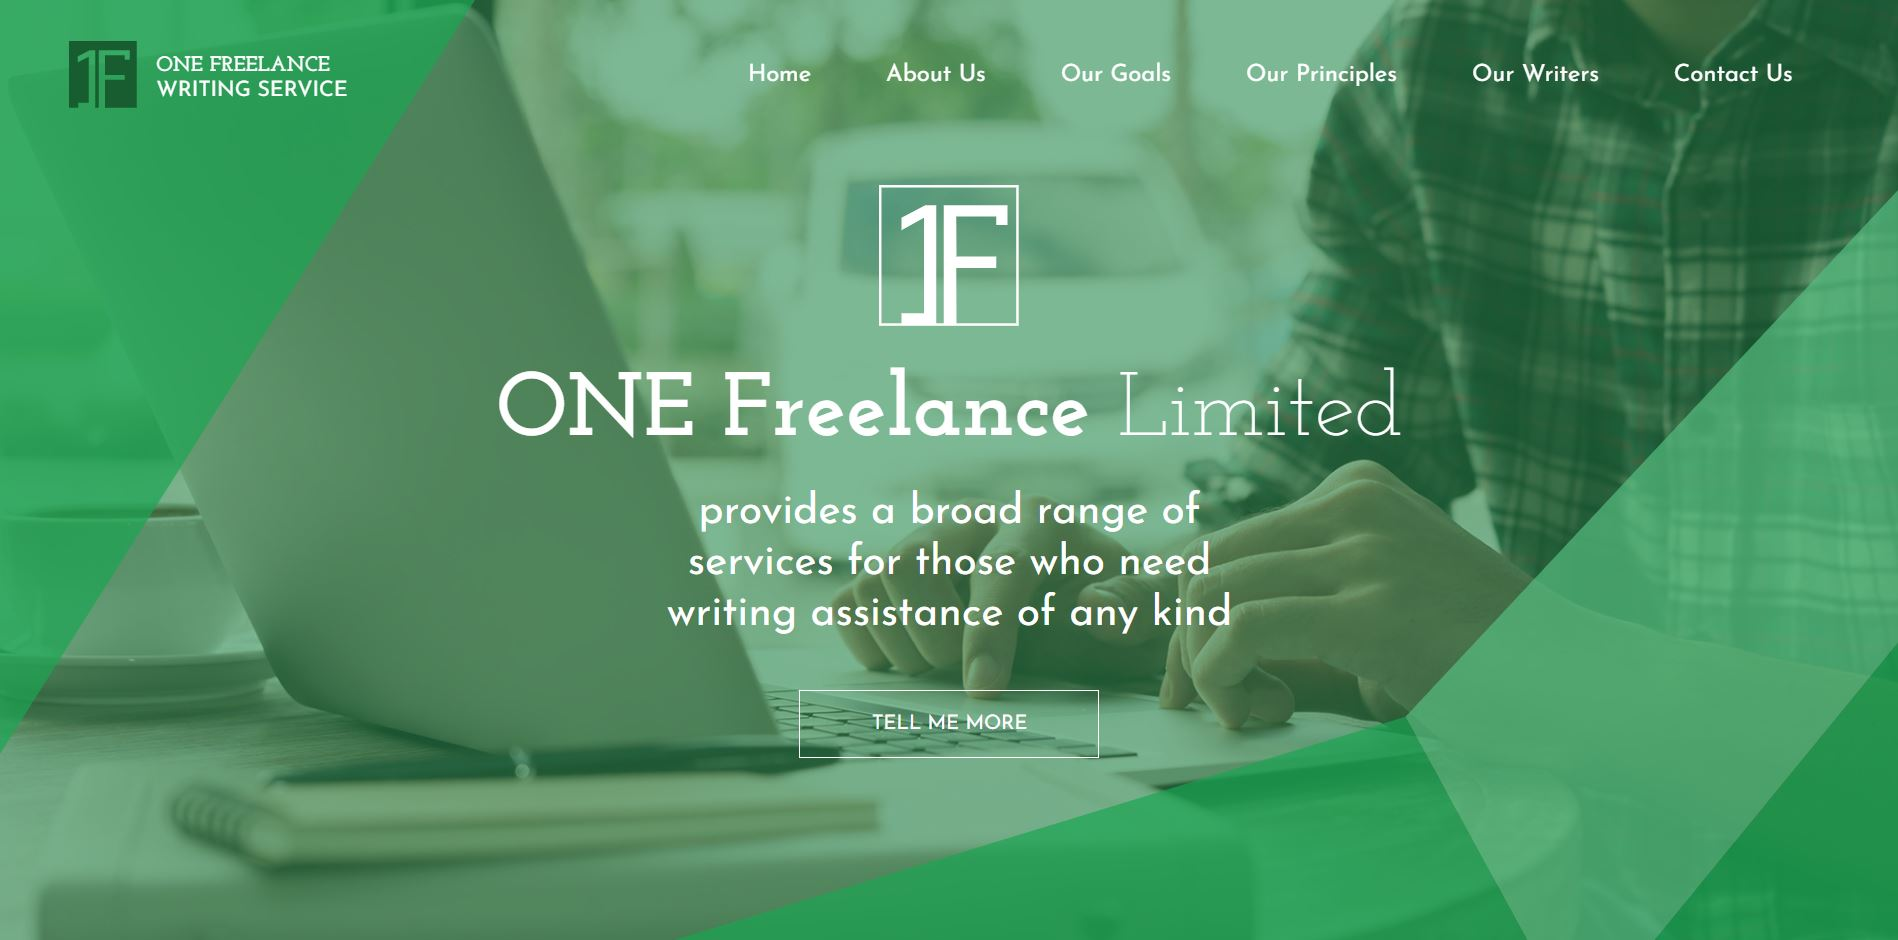 One Freelance Limited – Company Overview